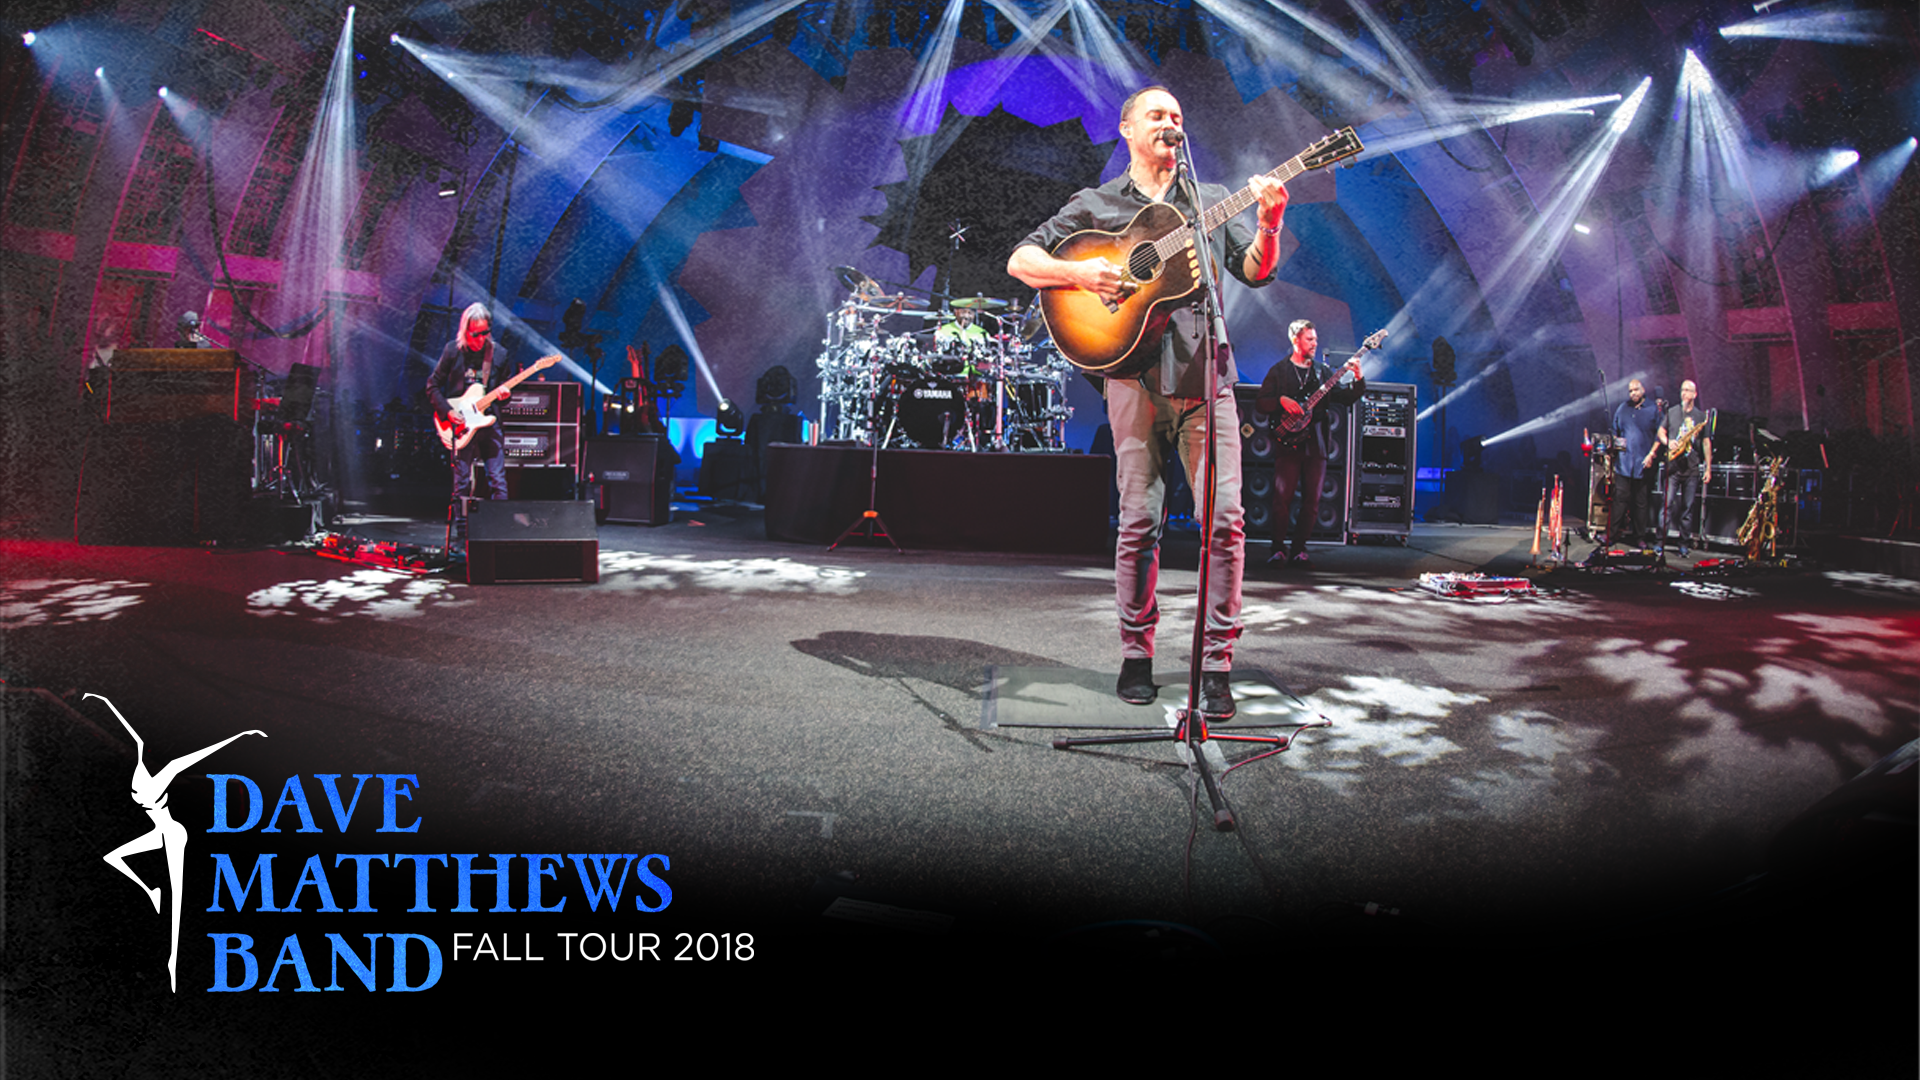 Dave Matthews Band Fall Tour 2018